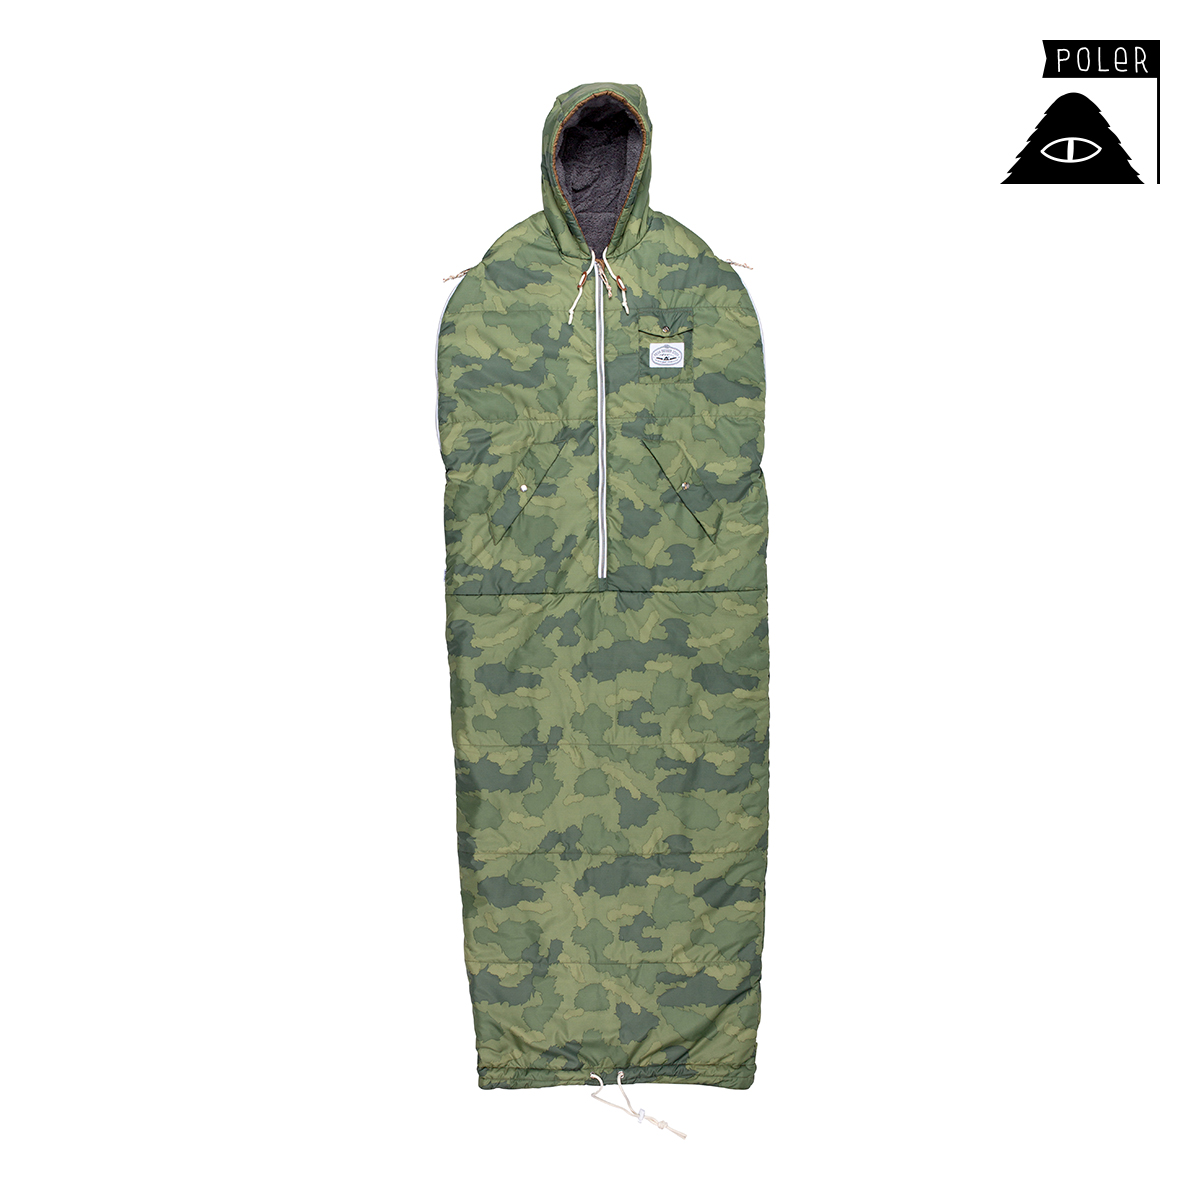 폴러 냅색 Shaggy Napsack - Green Furry Camo D